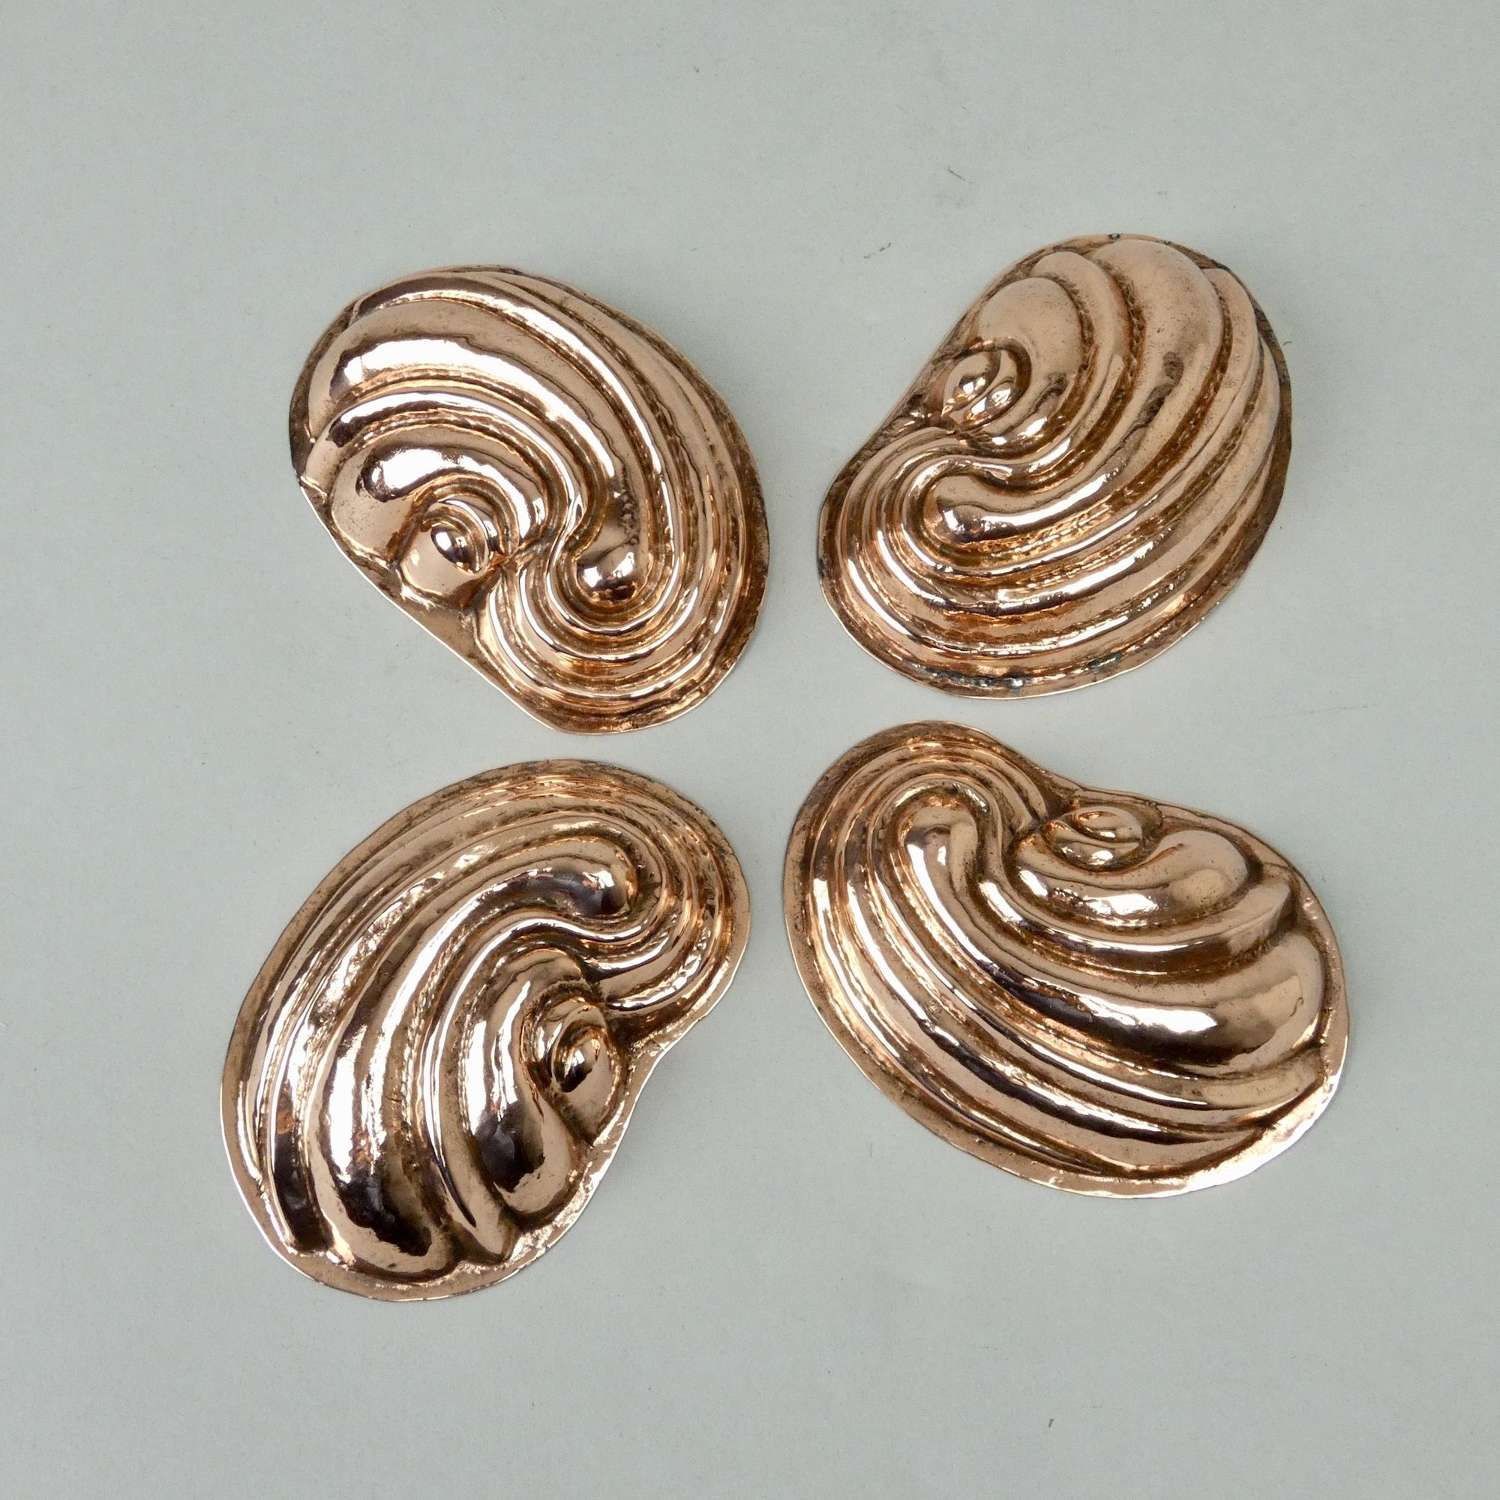 Small copper shell moulds